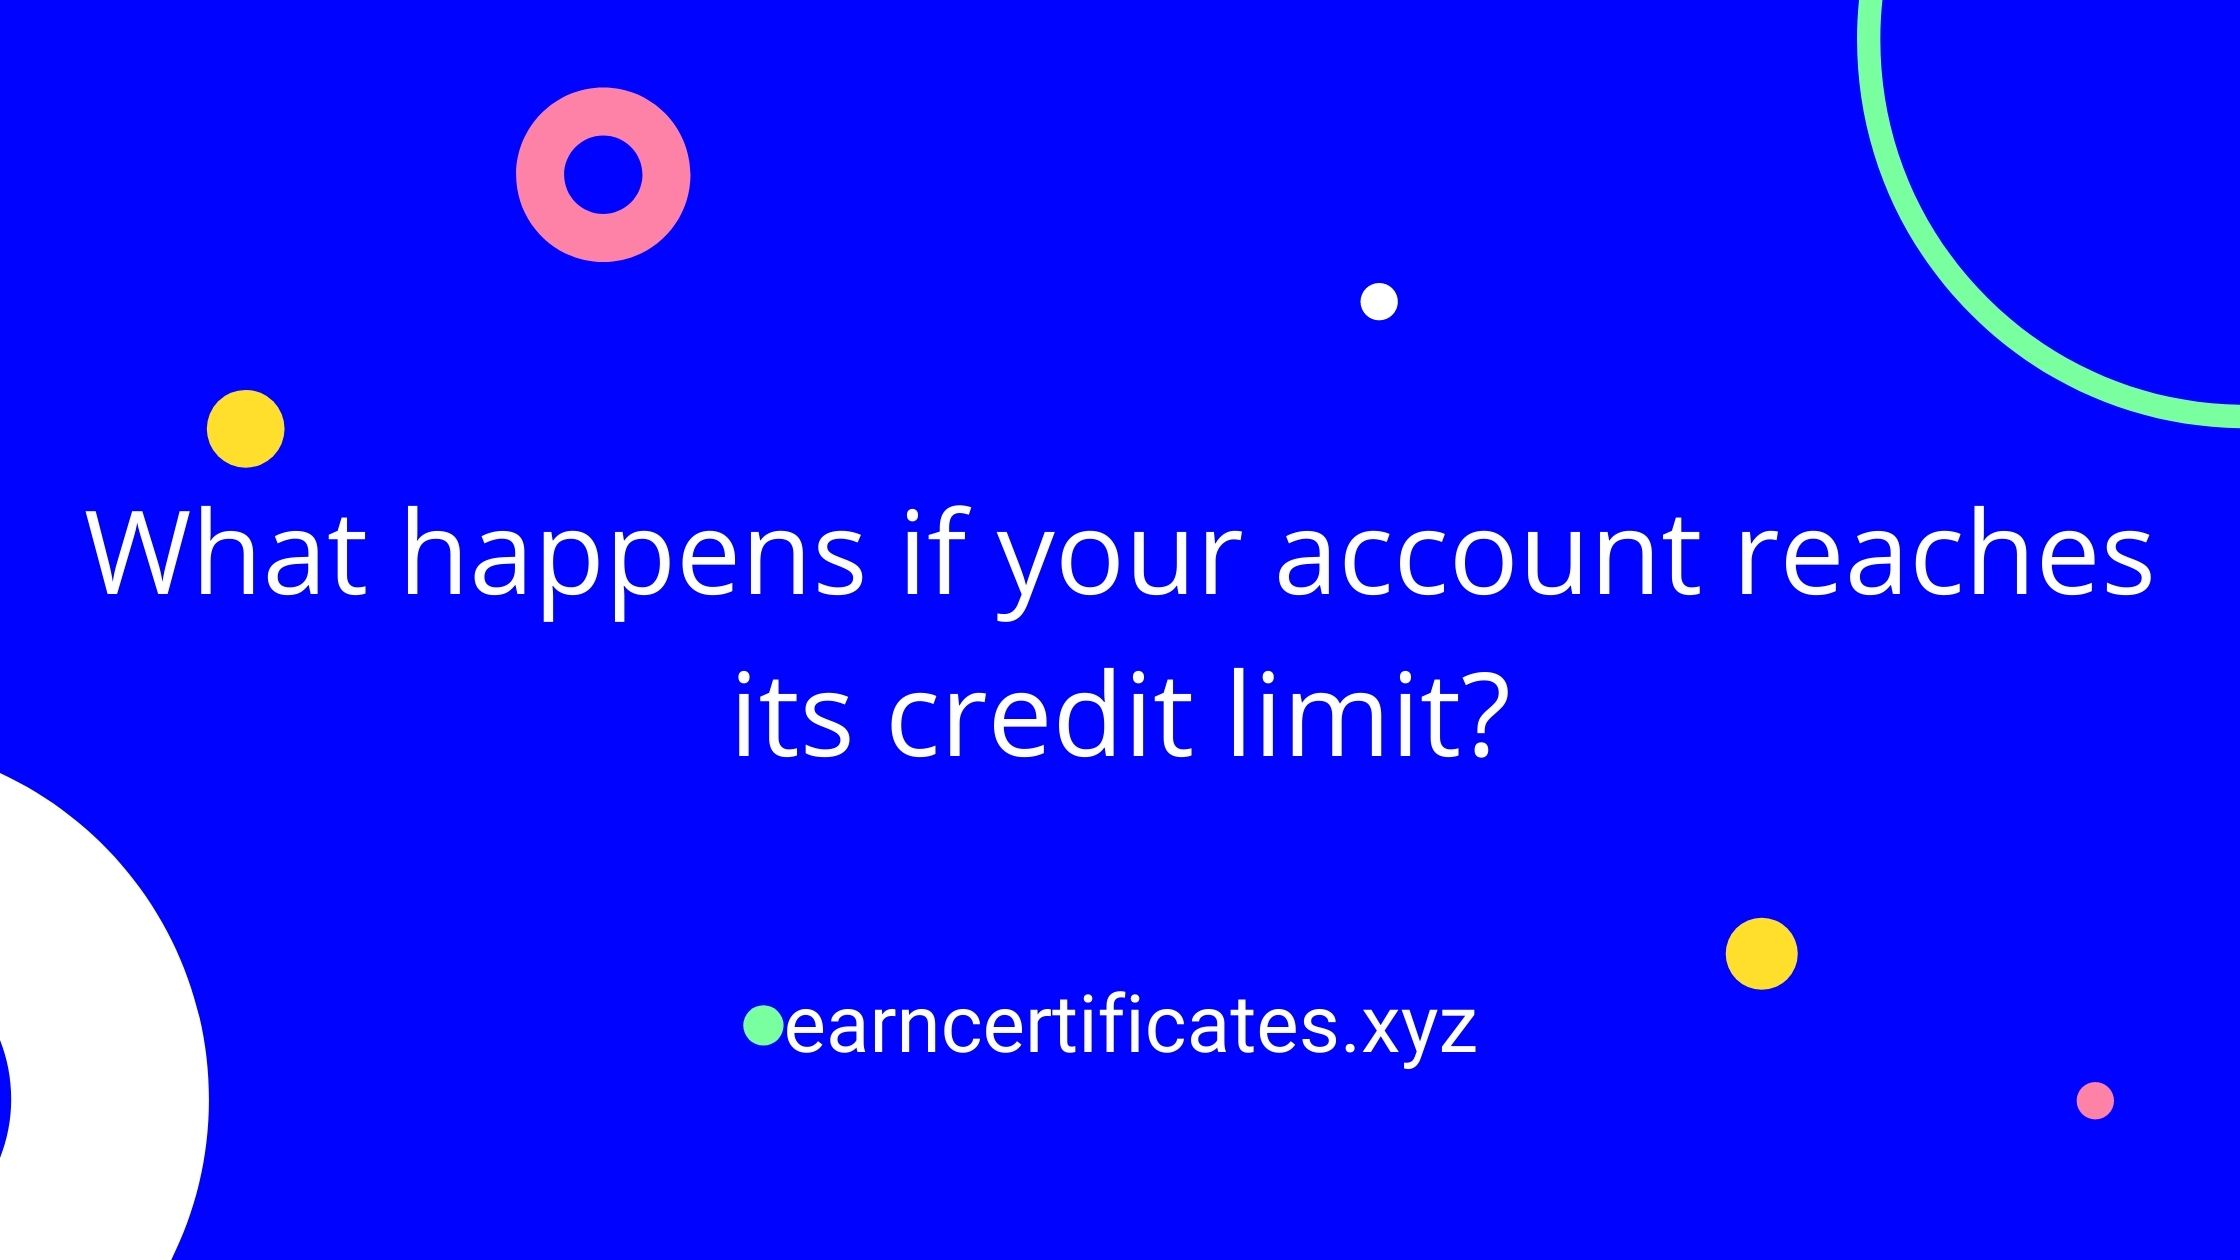 What happens if your account reaches its credit limit?